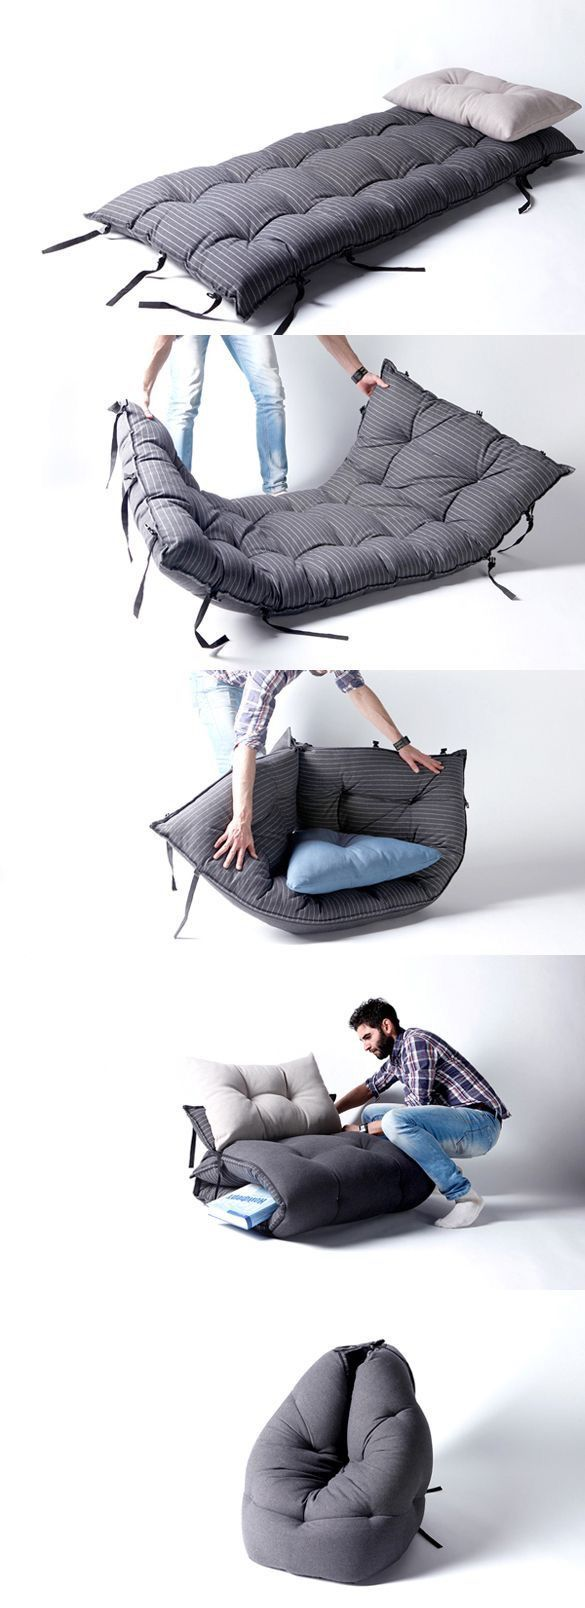 I need this in my life Maybe something for https://Addgeeks.com ?